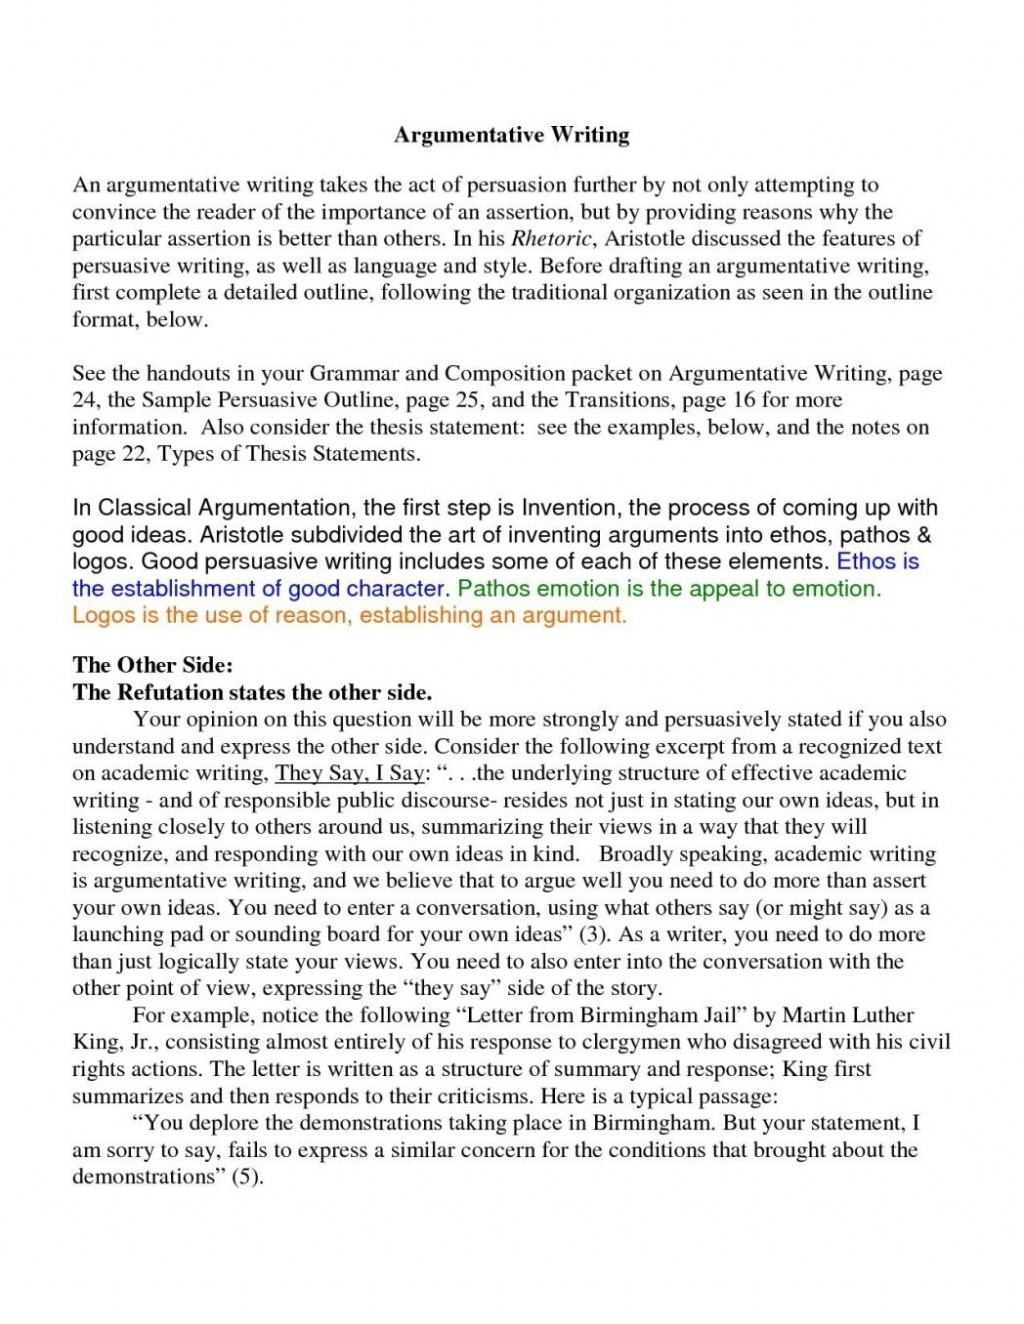 019 Argumentative Essay Samples For College Examples Of Persuasive Inside Level Example Awful Vs Are And Essays The Same Differentiate Large